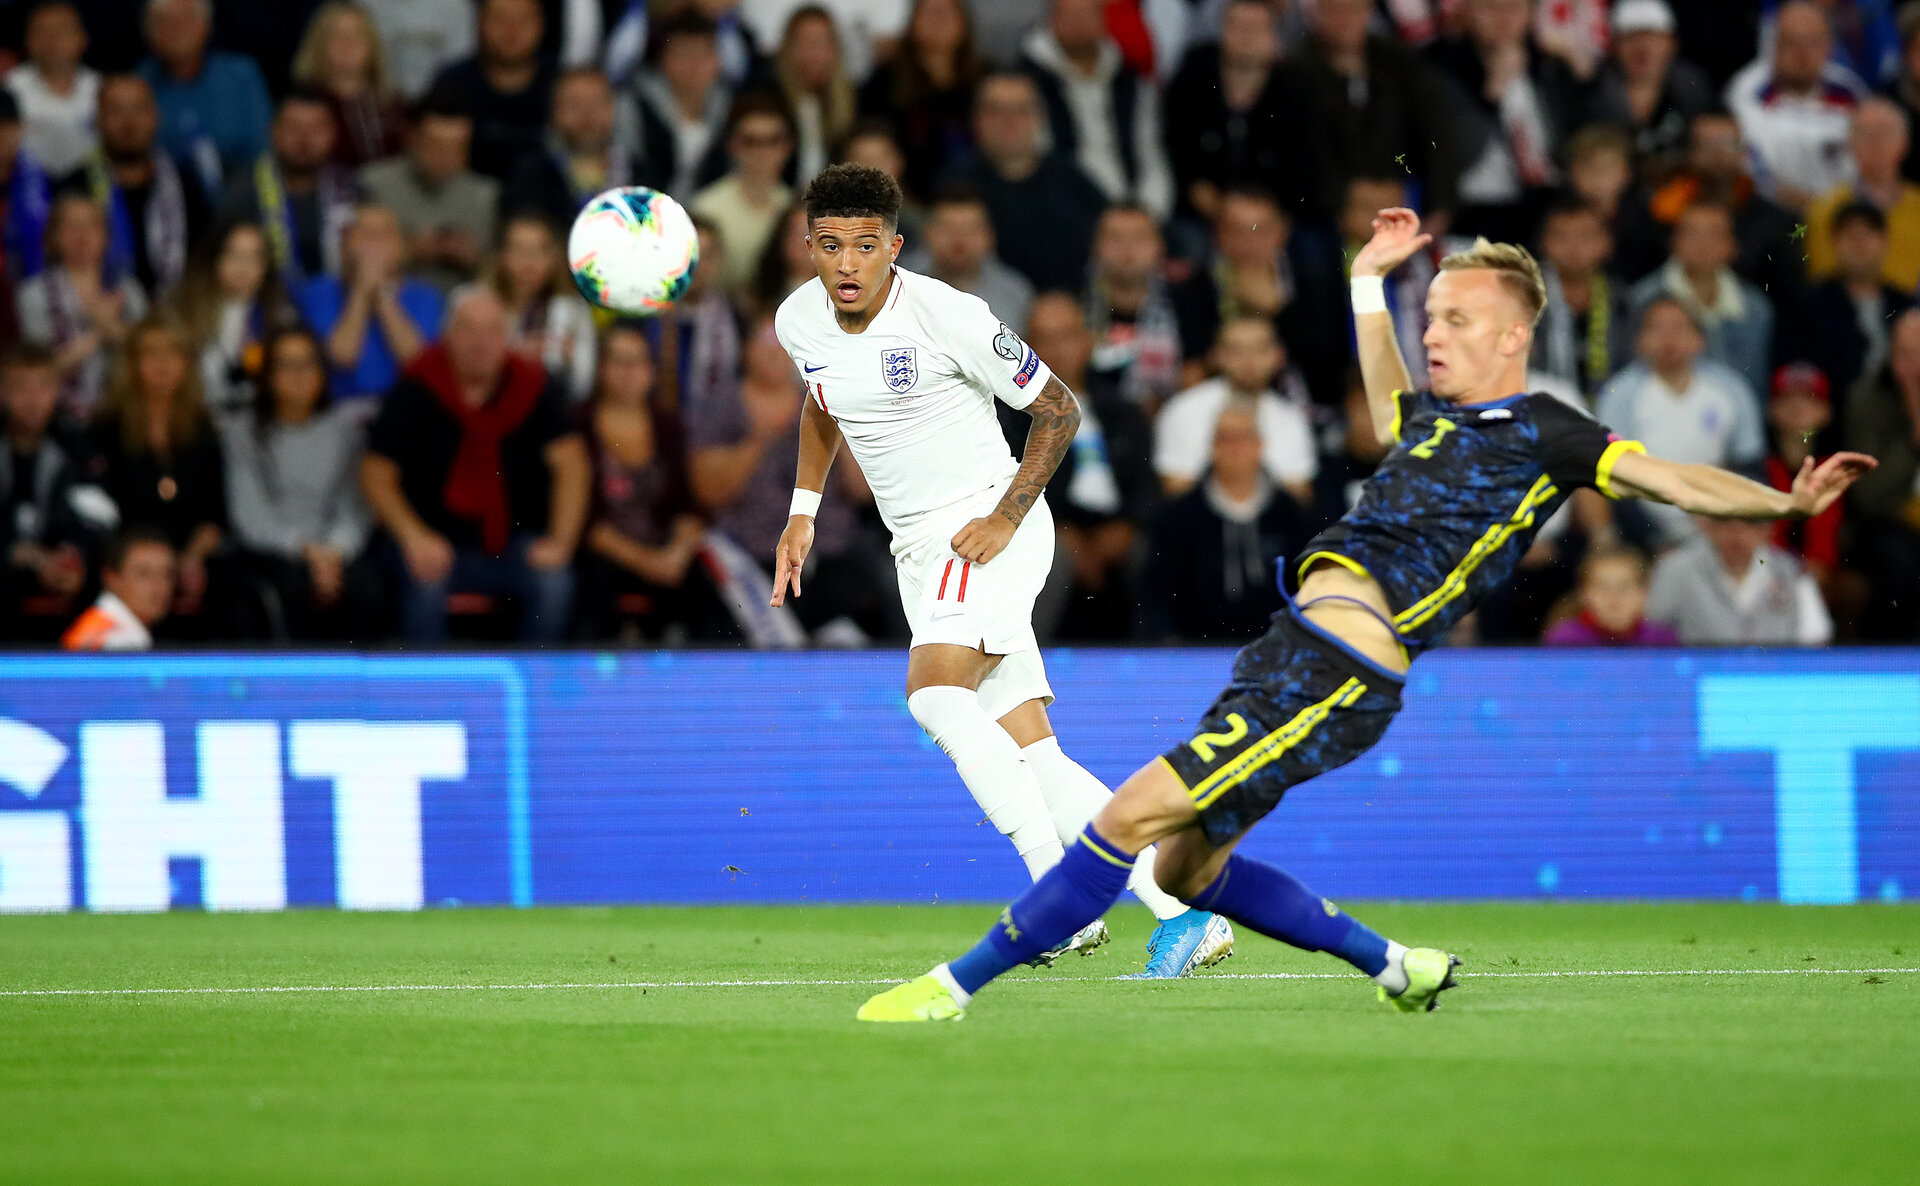 SOUTHAMPTON, ENGLAND - SEPTEMBER 10: Jadon Sancho(L) of England during the UEFA Euro 2020 qualifier match between England and Kosovo at St. Mary's Stadium on September 10, 2019 in Southampton, England. (Photo by Matt Watson/Southampton FC via Getty Images)